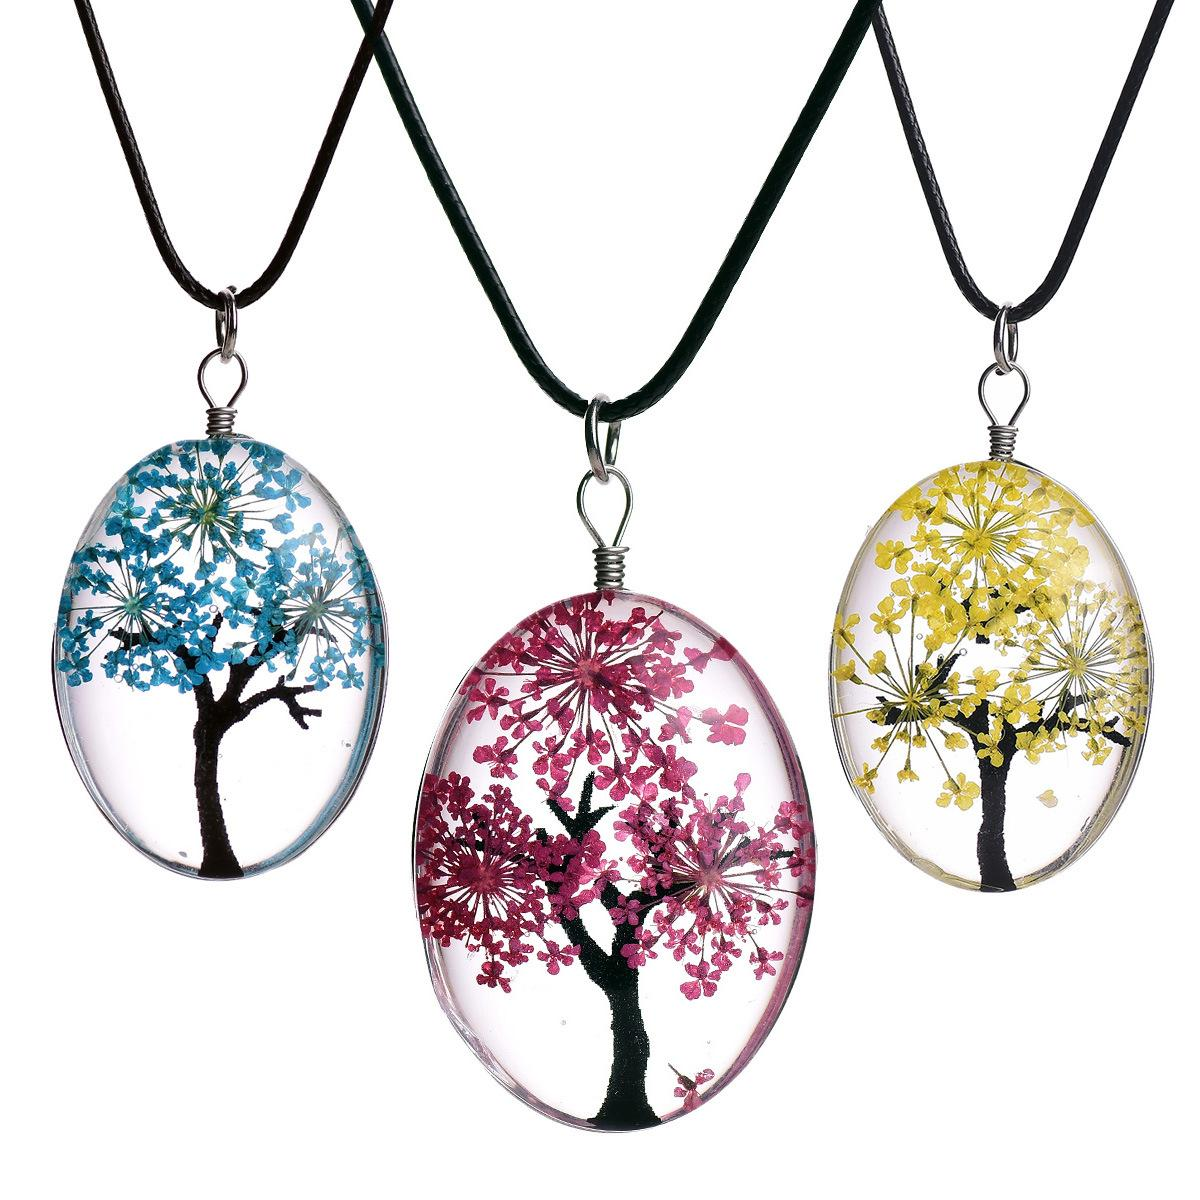 Wholesale Terrarium Pendants Buy Cheap In Bulk From China Suppliers With Coupon Dhgate Com